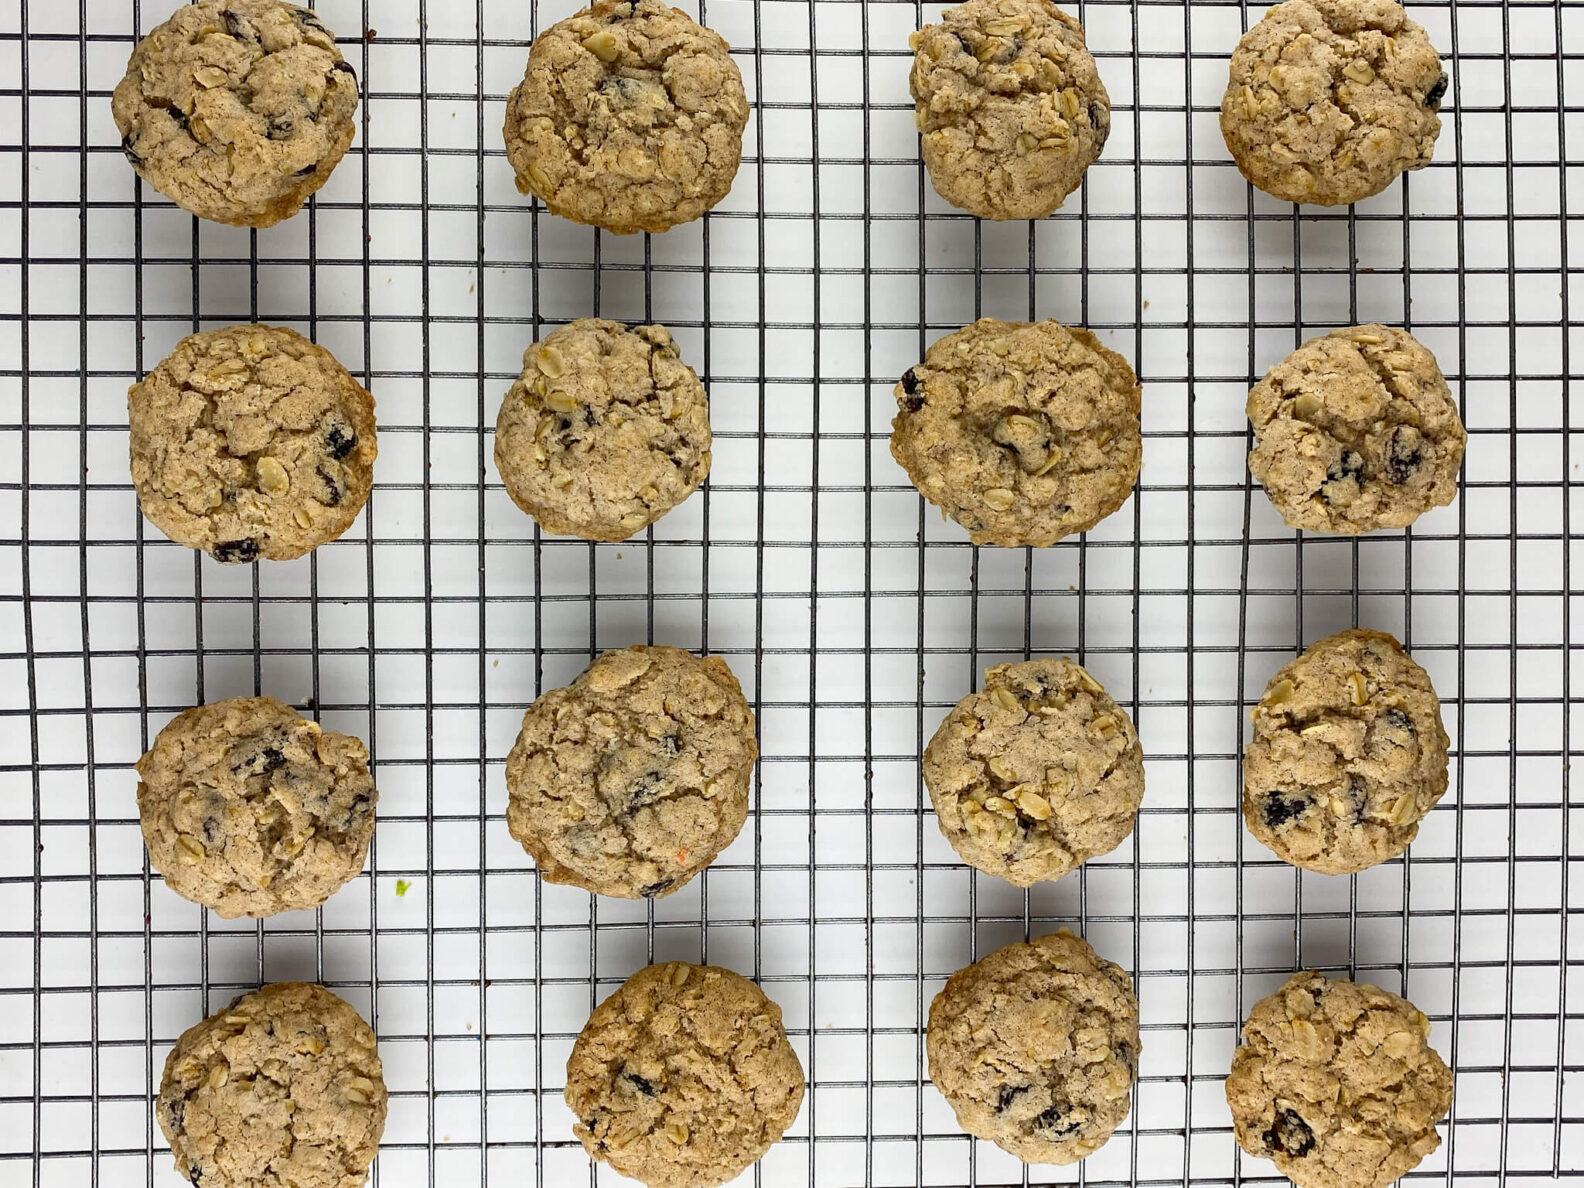 Kate's Safe and Sweet - Oatmeal Raisin Cookies on Tray